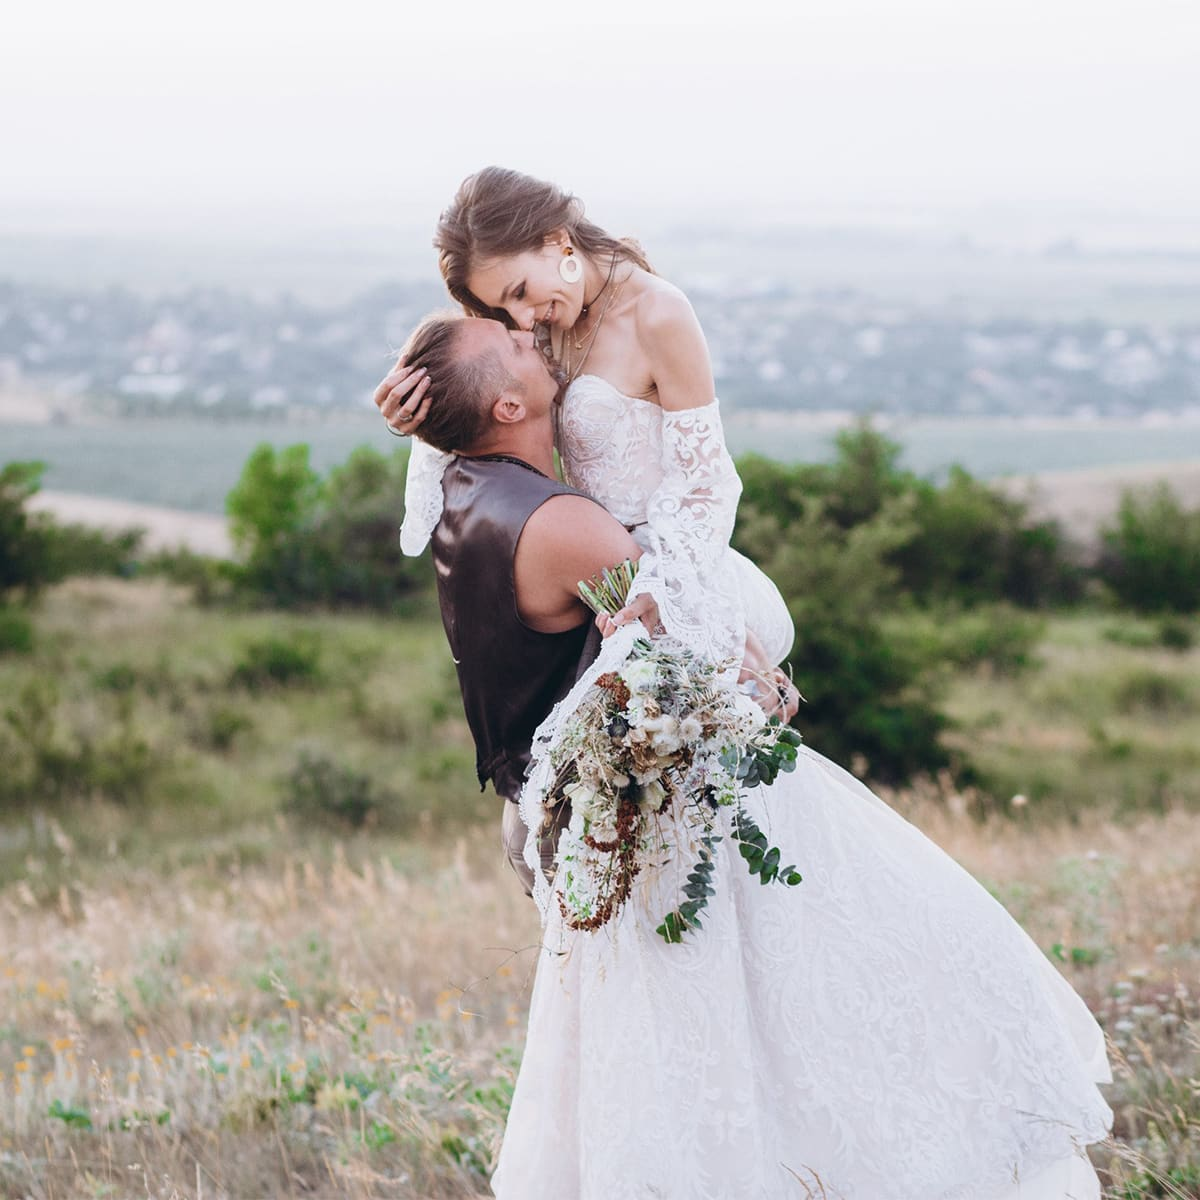 Bride and groom embracing on their wedding day